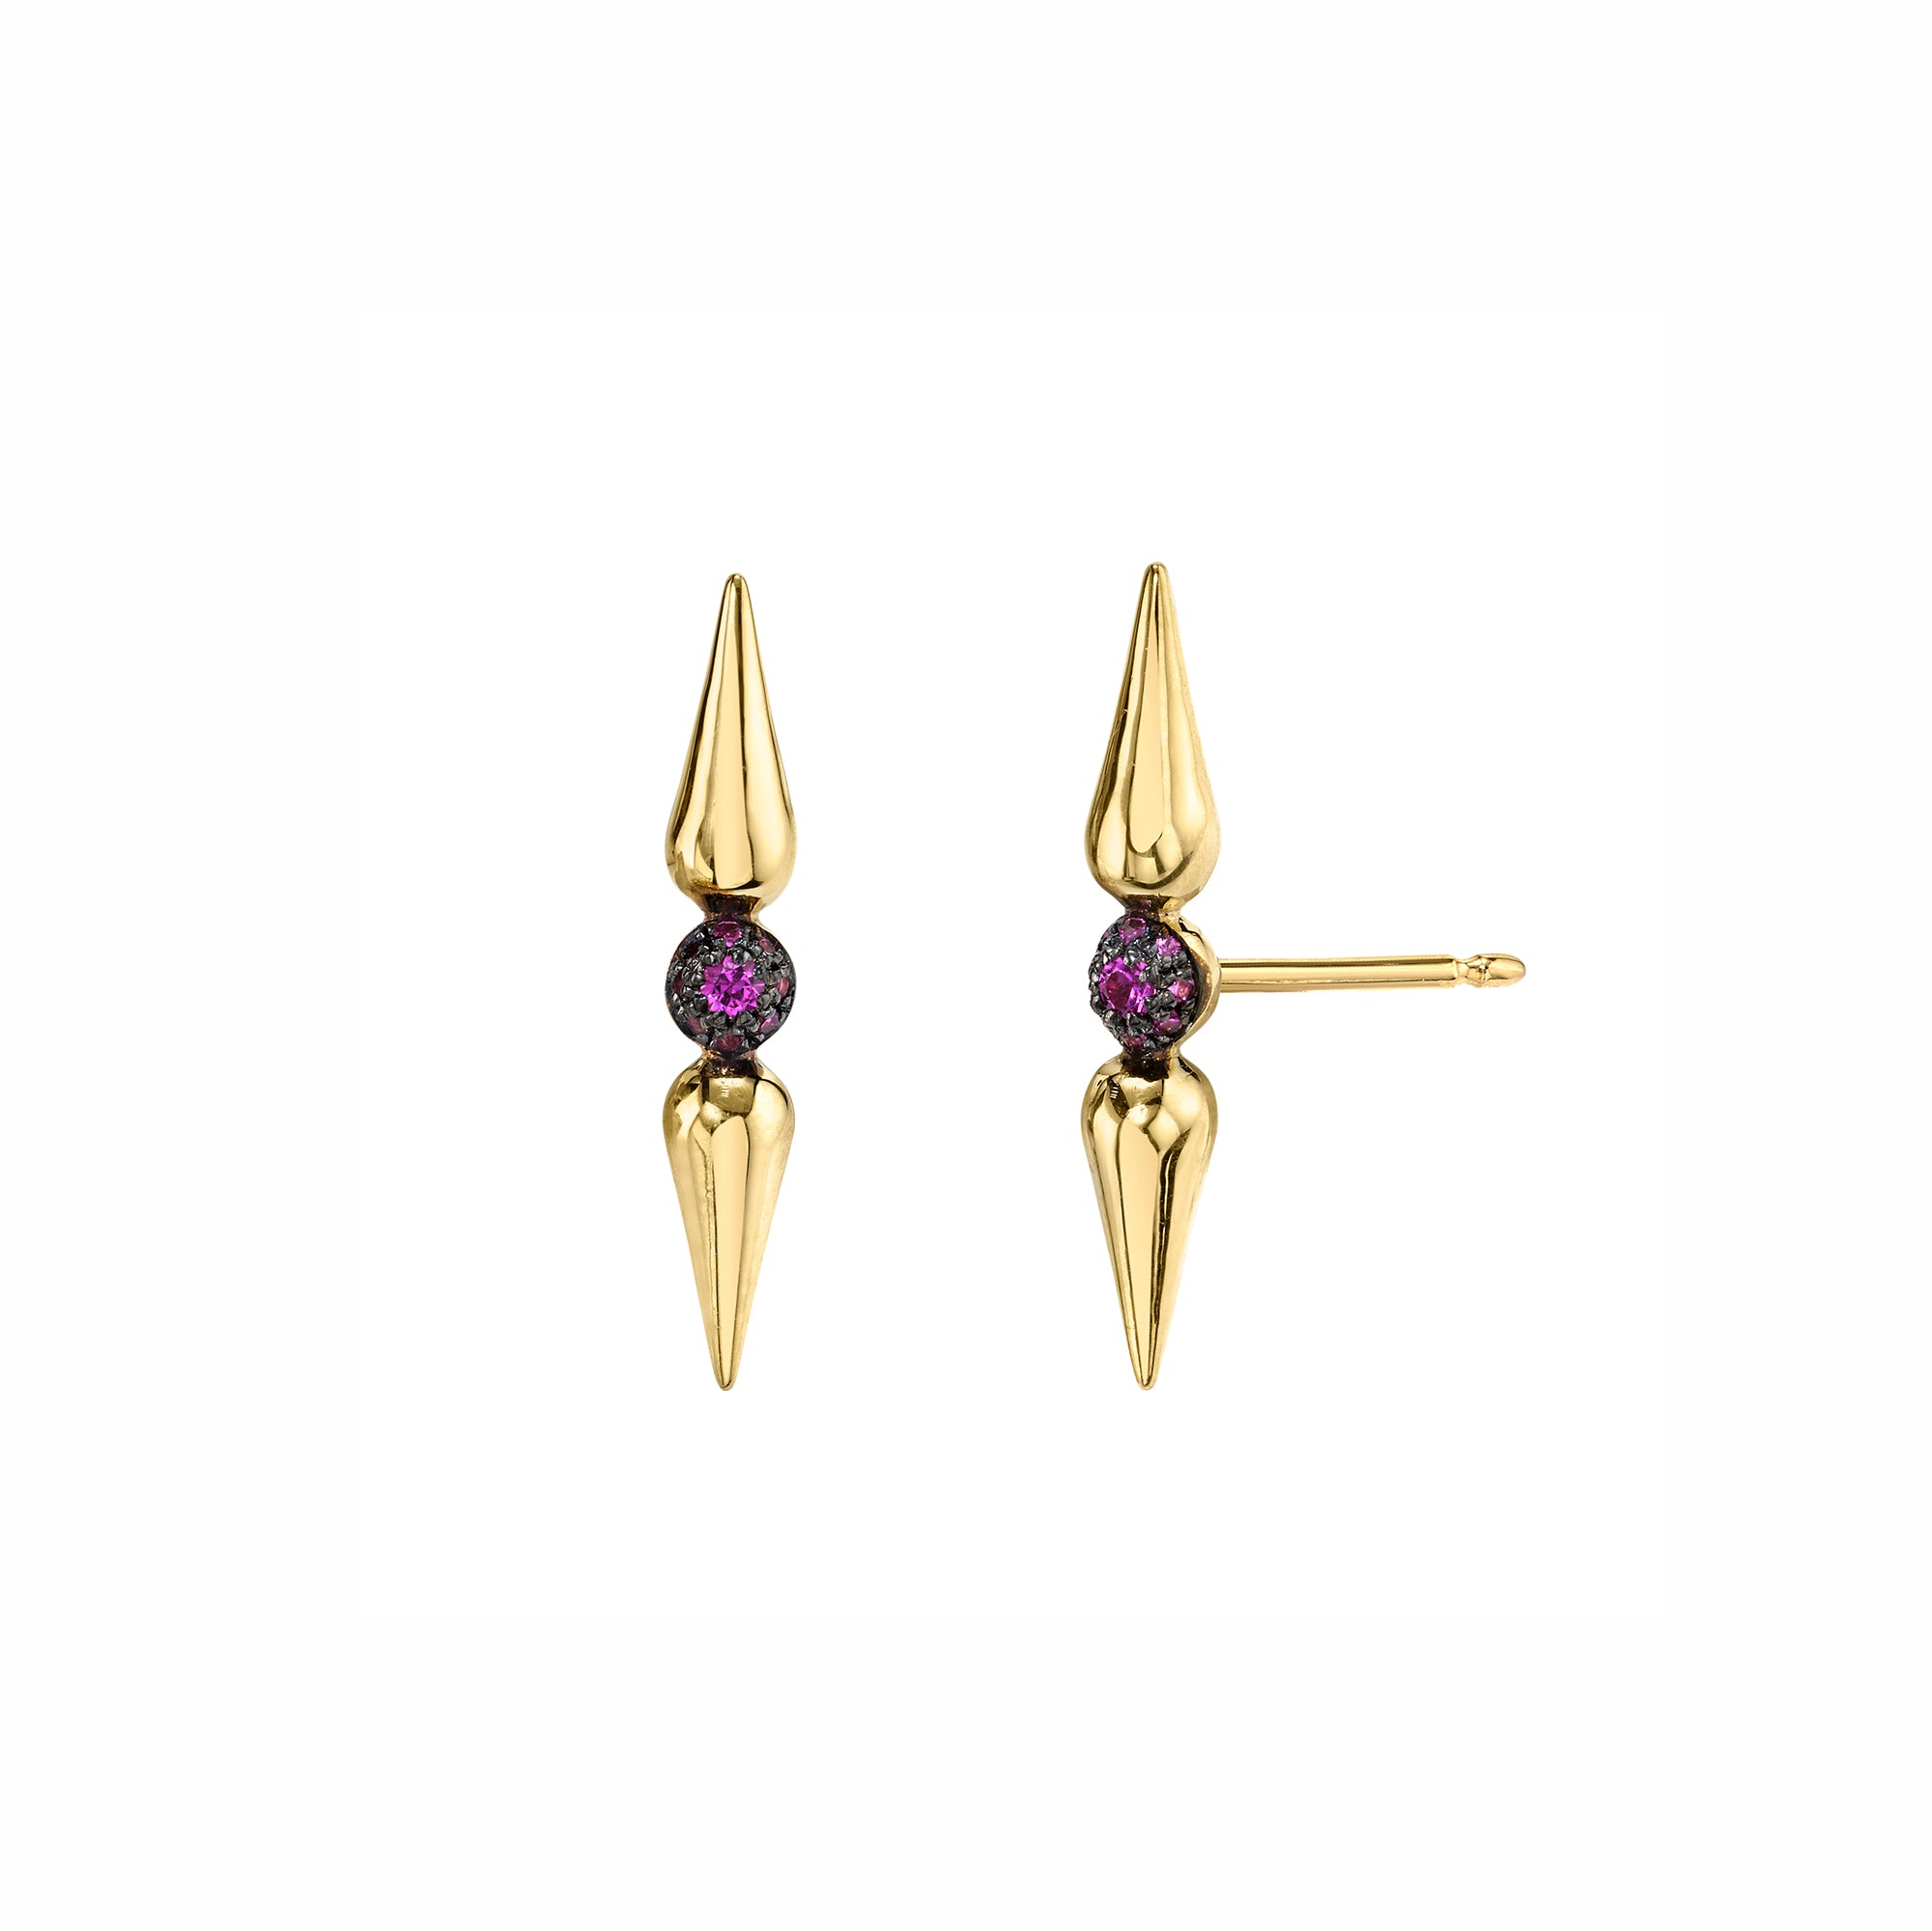 Pave Center Spear Studs - Pink Sapphire - Sarah Hendler - Earrings | Broken English Jewelry